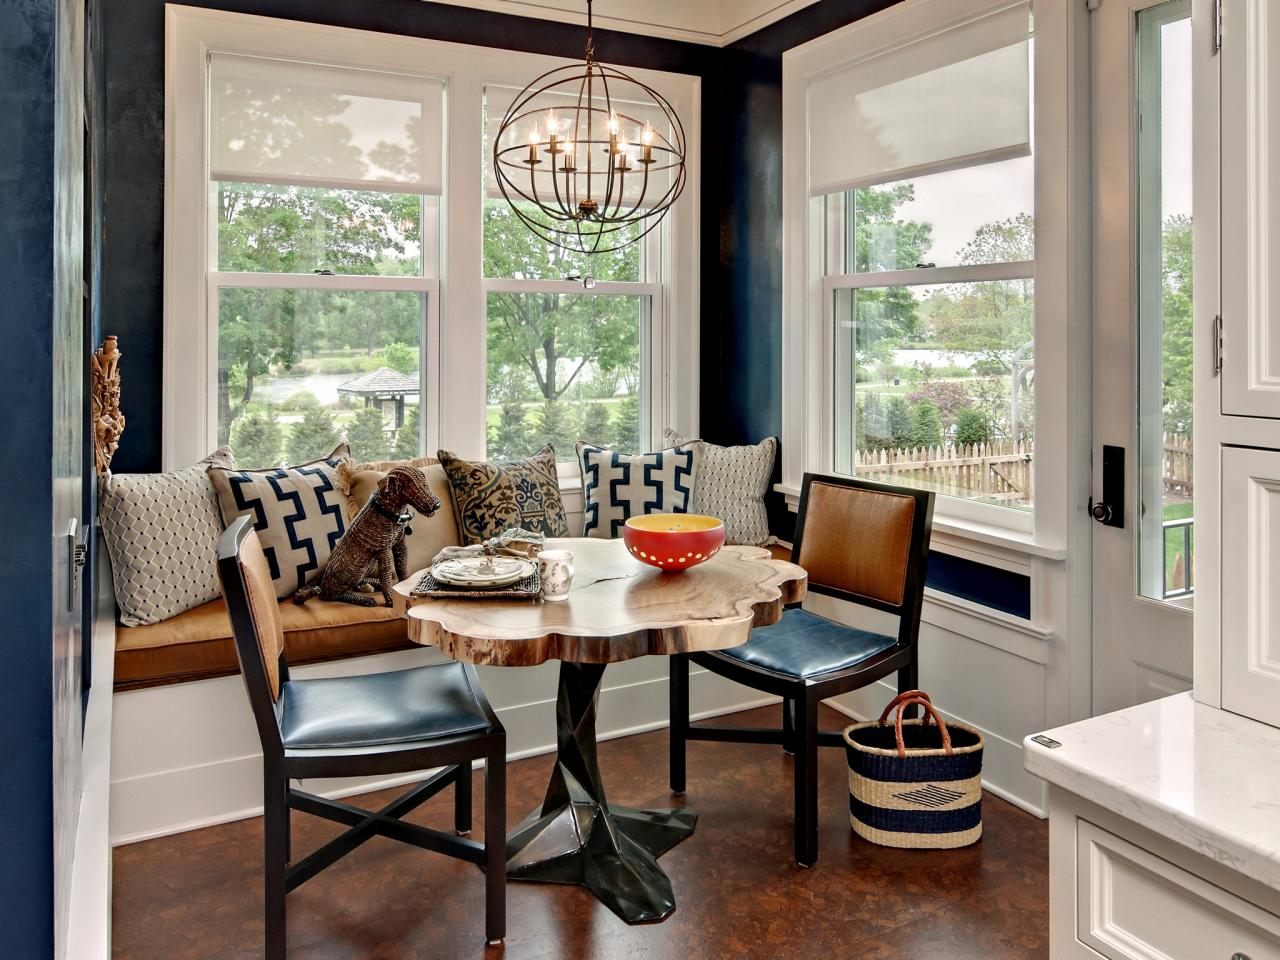 Pedestal kitchen table and chairs photo - 2